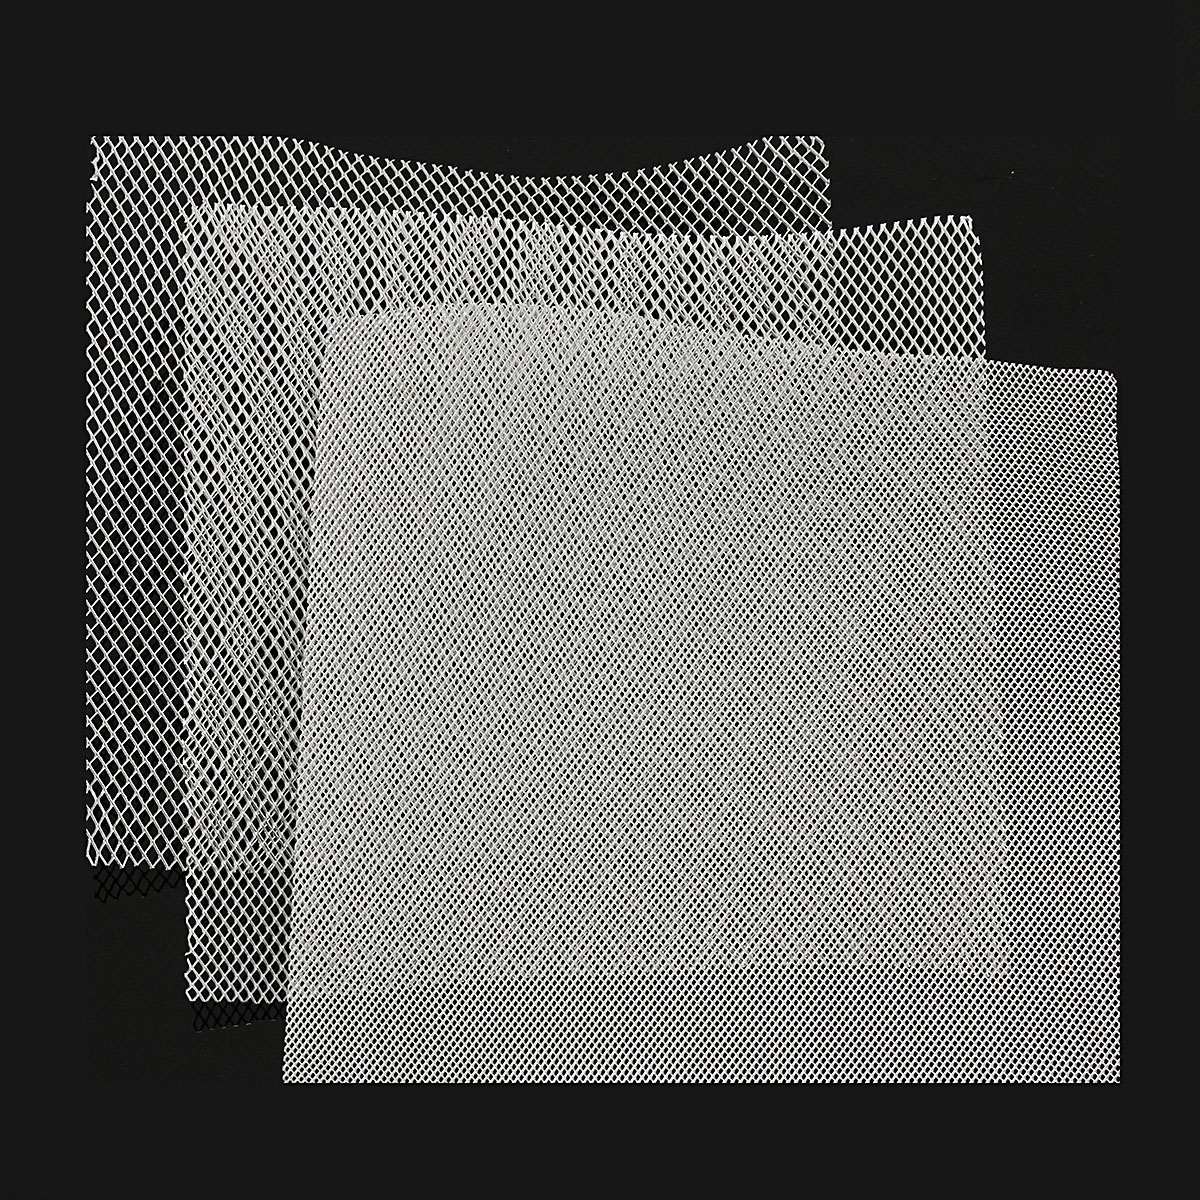 Aluminium Modelling Mesh Fine Medium And Coarse Appox 25cm By 20cm Sheets алмазный брусок двусторонний extra fine fine hardcoat™ 1200 mesh 9 micron 600 mesh 25 micron dmt w8ef h wb